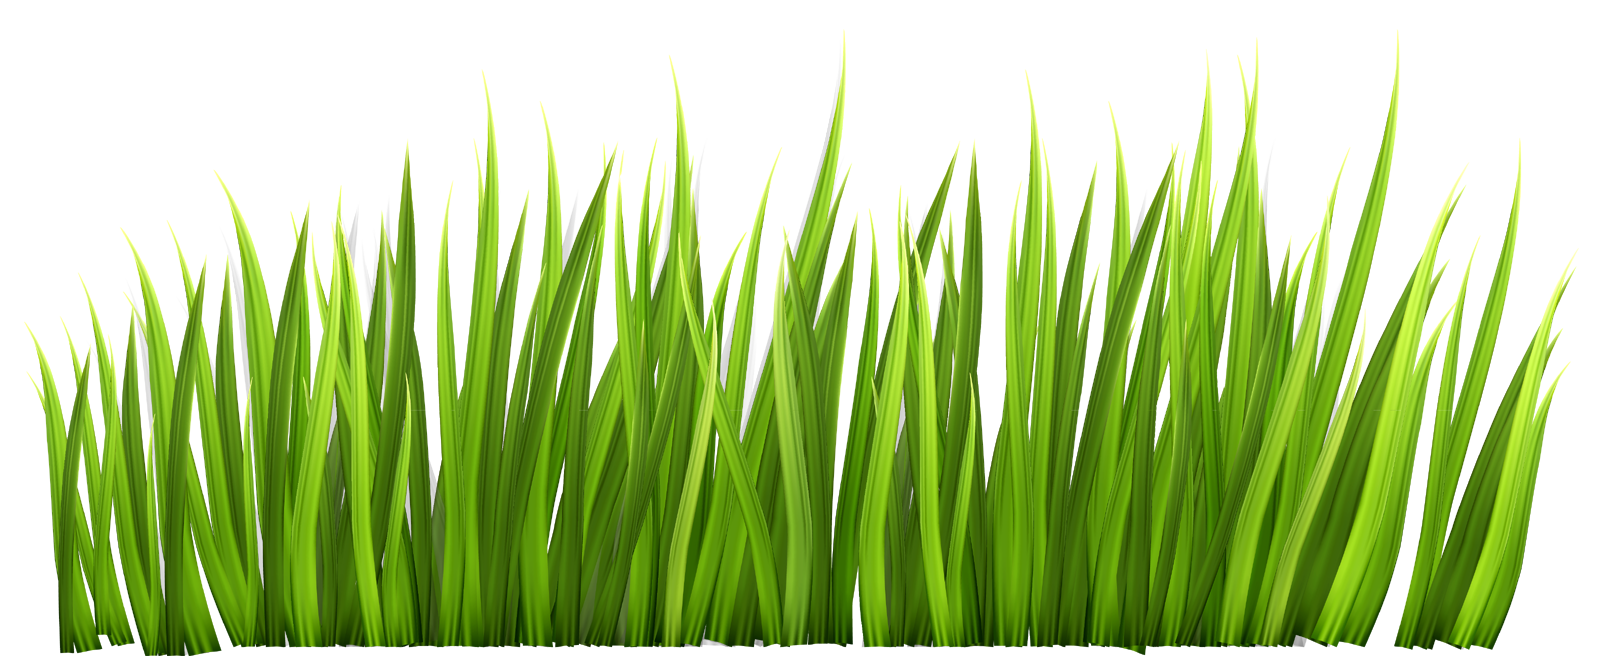 Grass png Decor Clipart Picture, Grass clipart